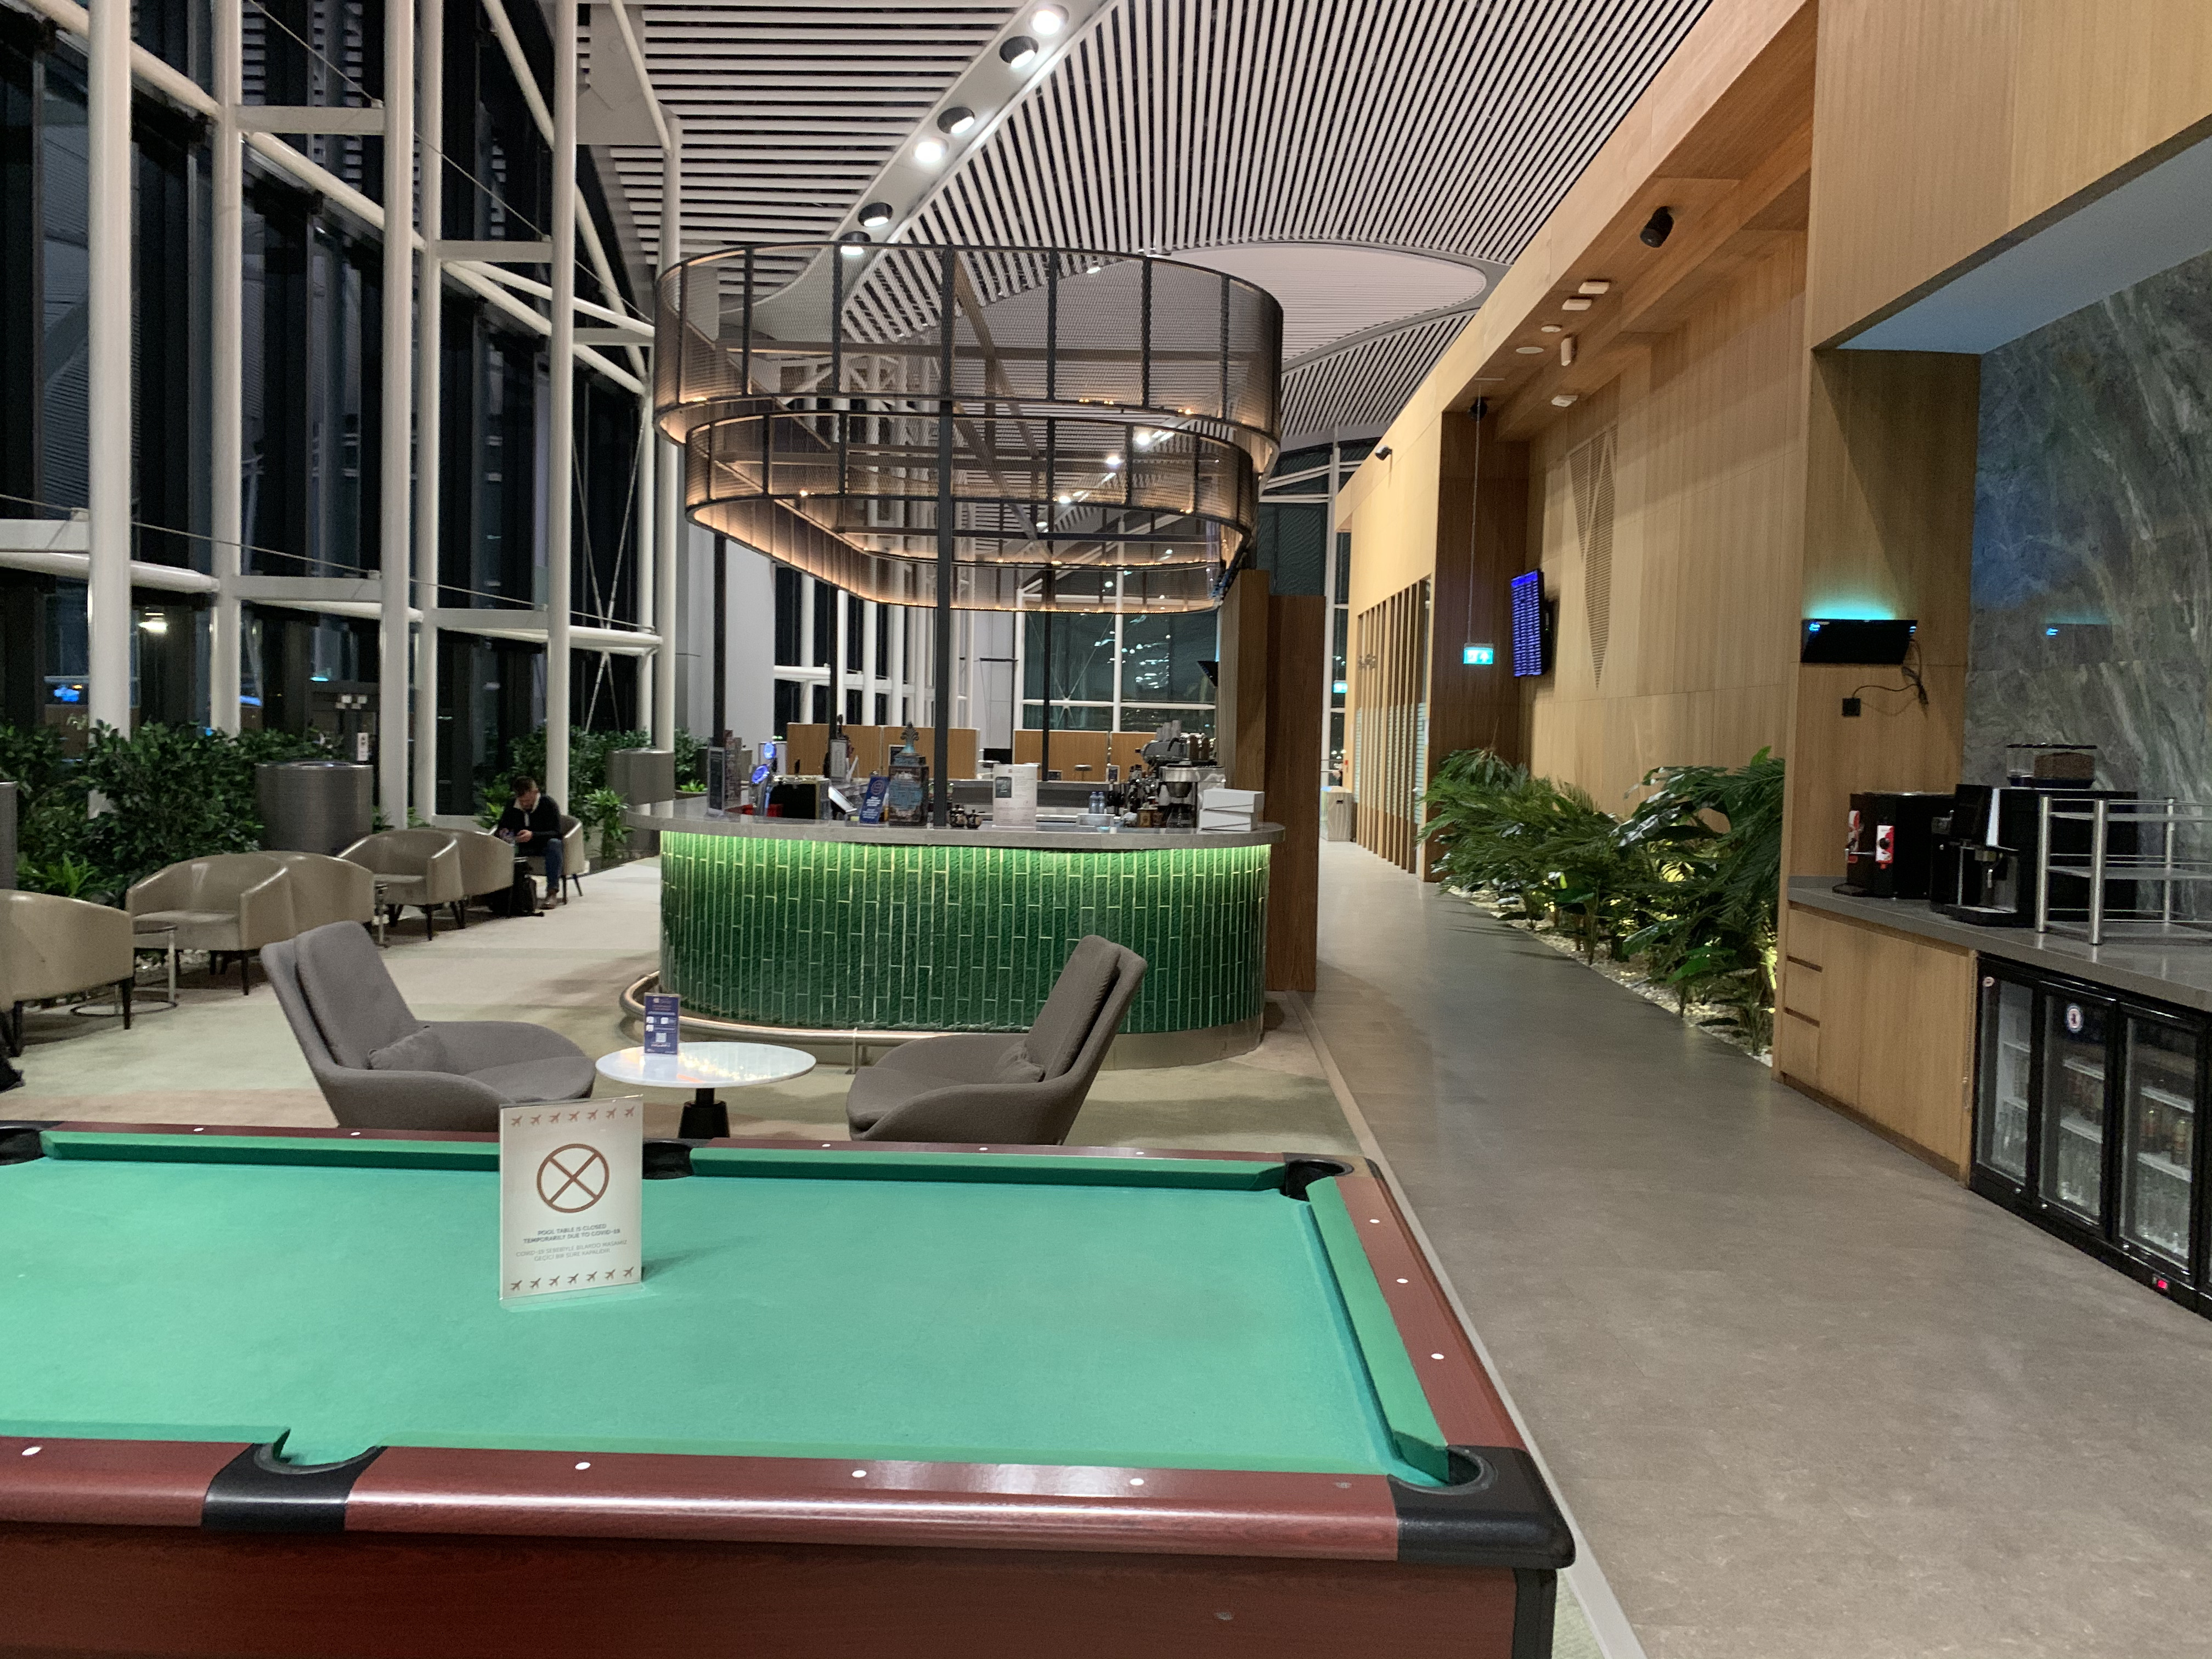 IGA Lounge Istanbul Airport Review (incl. Sleeping pods)